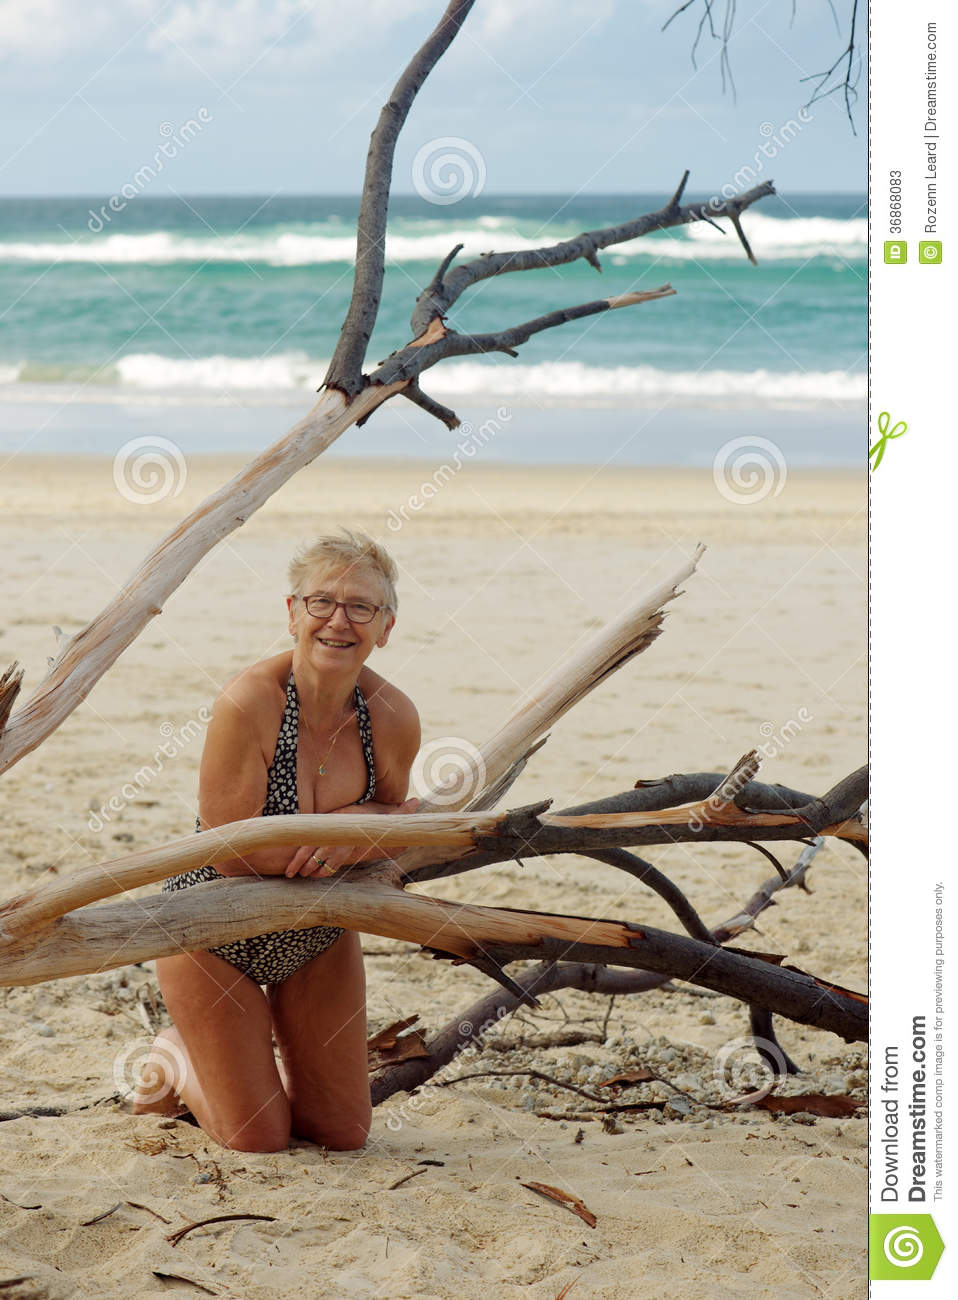 What This Guy Built Is Brilliant And Going To Make Truck Owners Very Jealous besides Watch together with Sexy Irina Shayk Wallpapers 3 furthermore Stock Photos Mature Woman Travelling Full Body Beach Portrait Natural Attractive Senior Happy Swimsuit Some Drift Wood Beach Image36868083 besides Barn Door Baby Gate. on wood car body plans